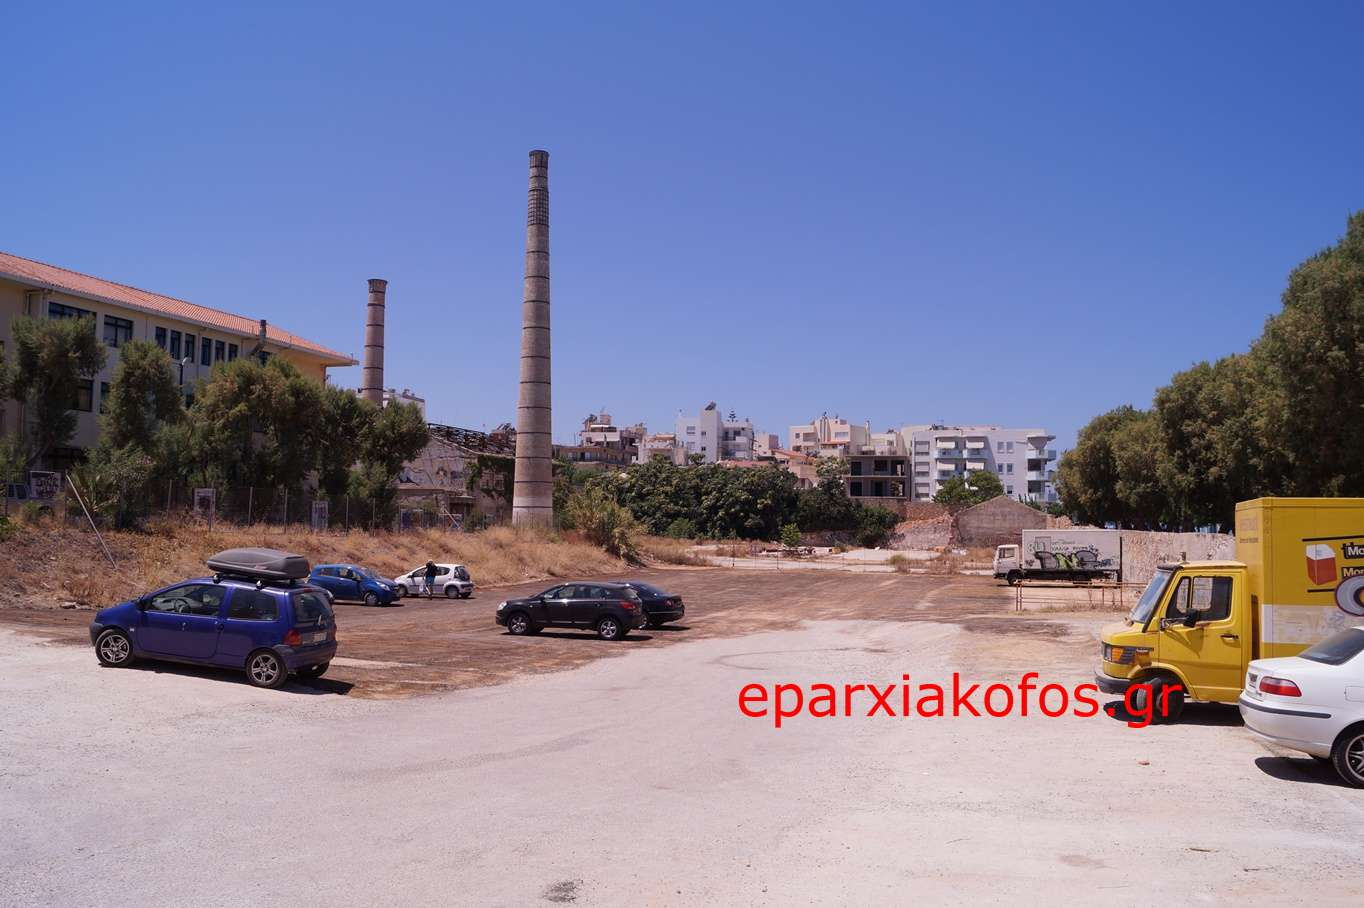 eparxiakofos0022